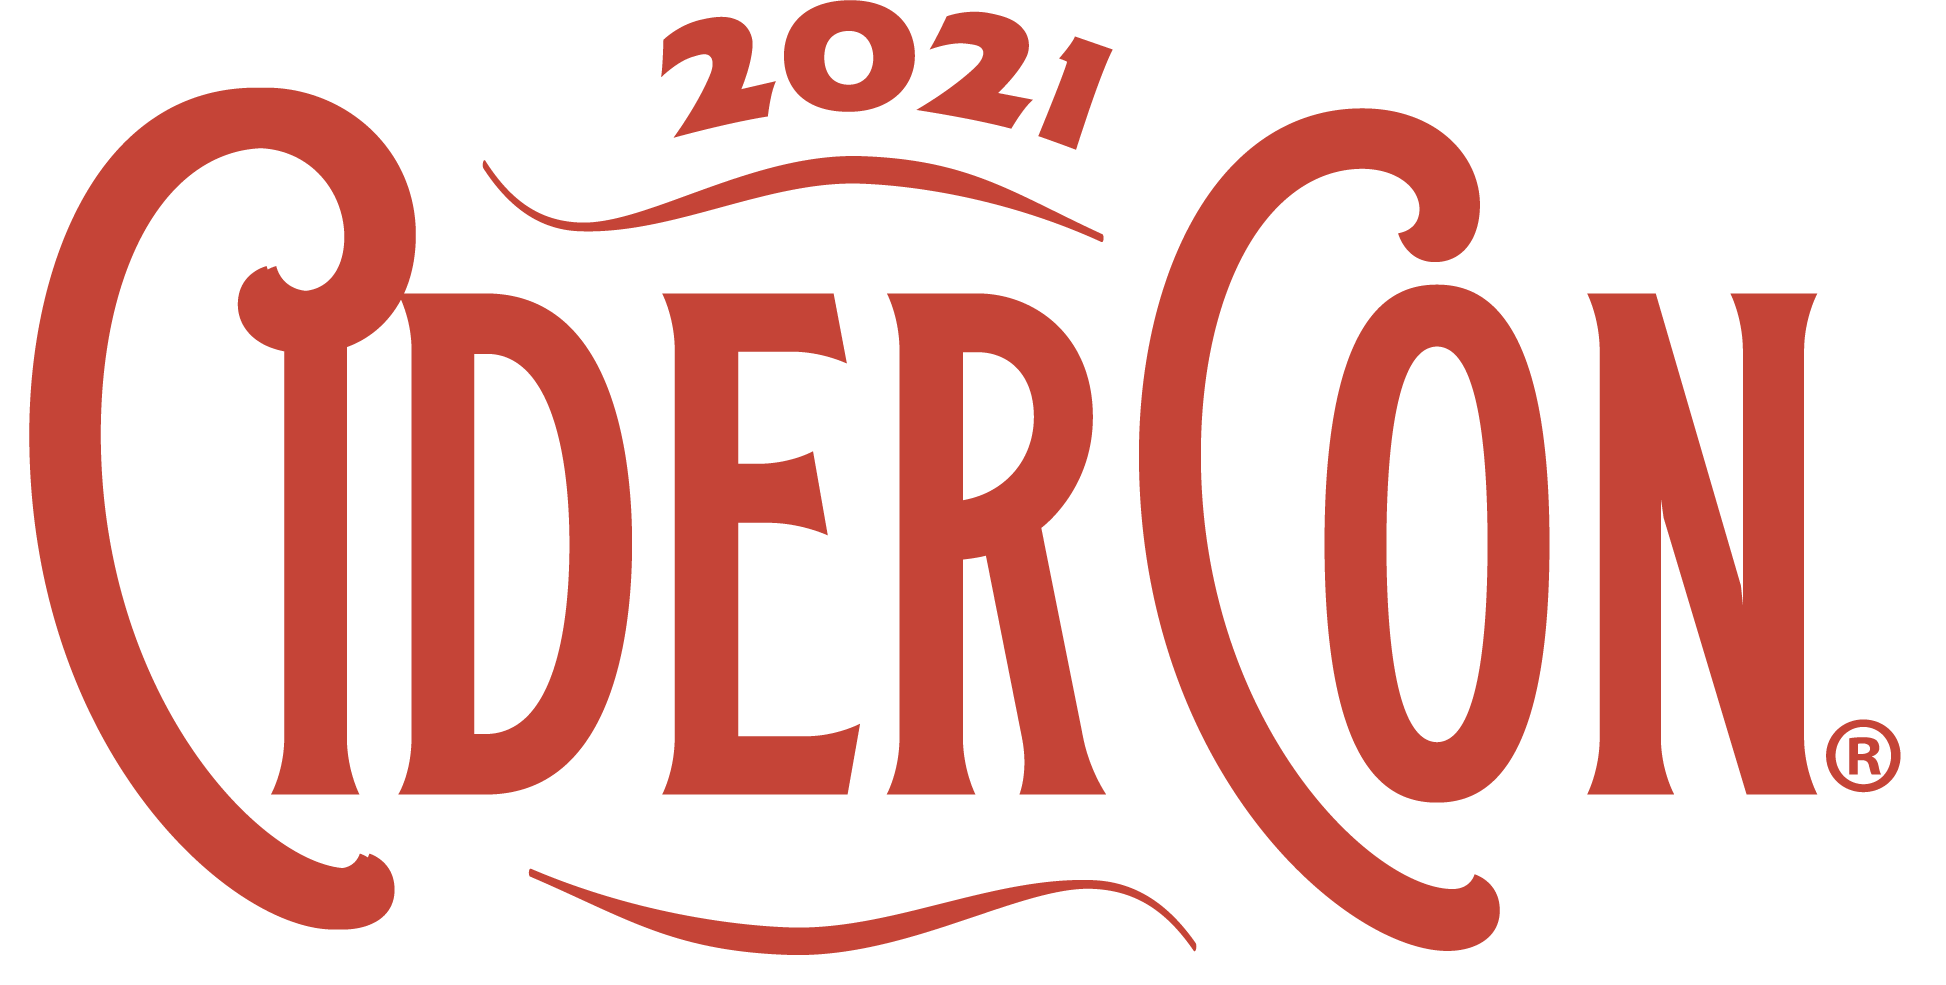 2021--cidercon-logo-red-01